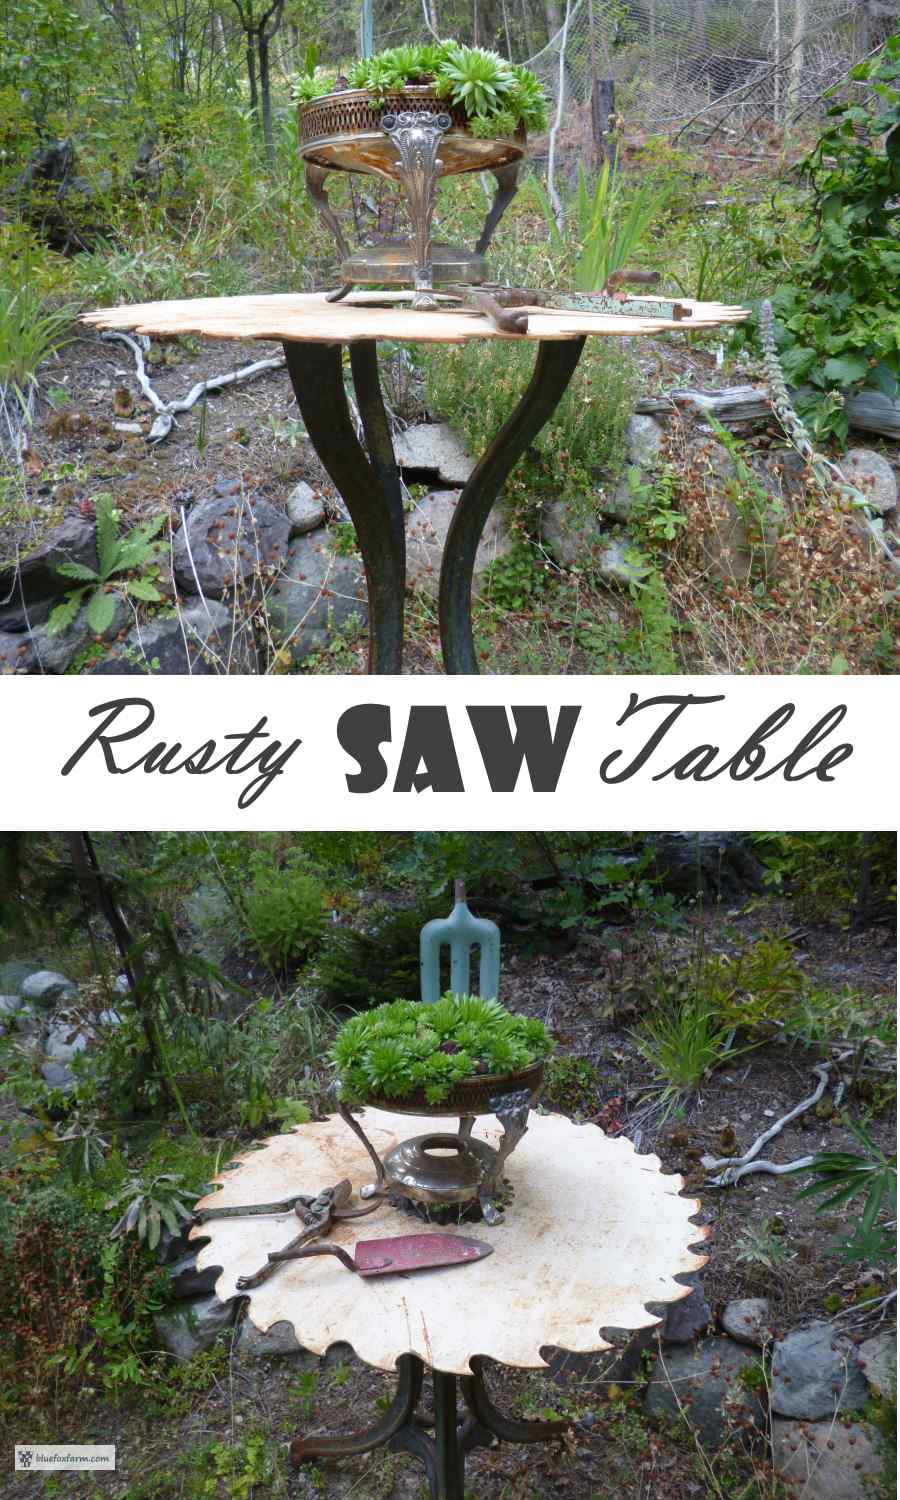 Rusty Saw Table